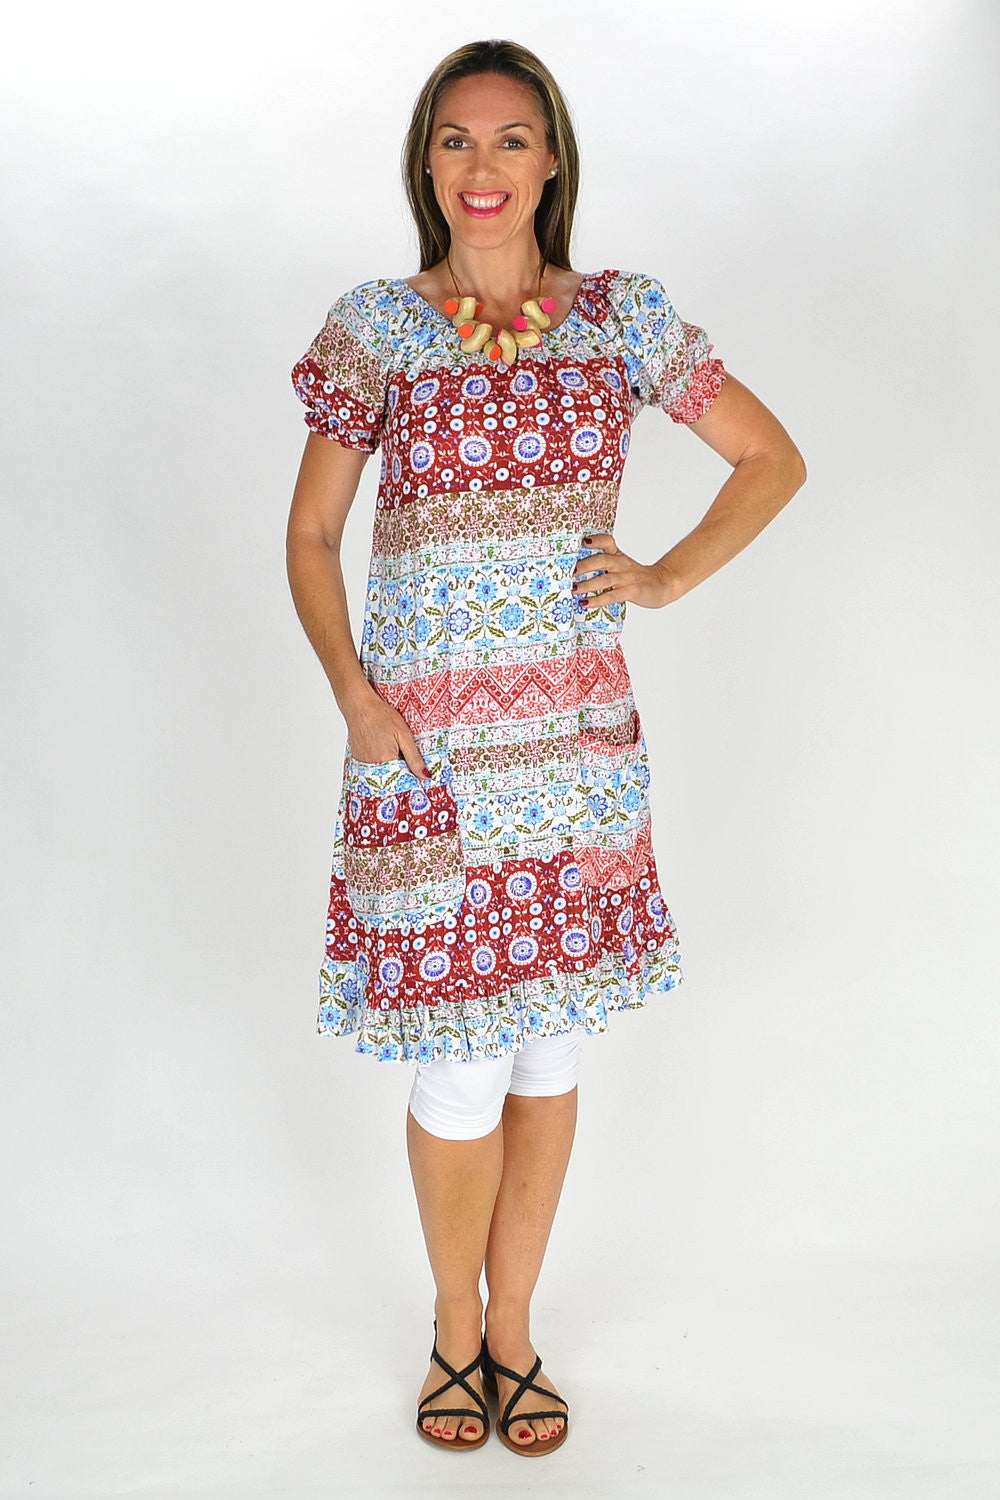 Festive Floral Tunic - at I Love Tunics @ www.ilovetunics.com = Number One! Tunics Destination